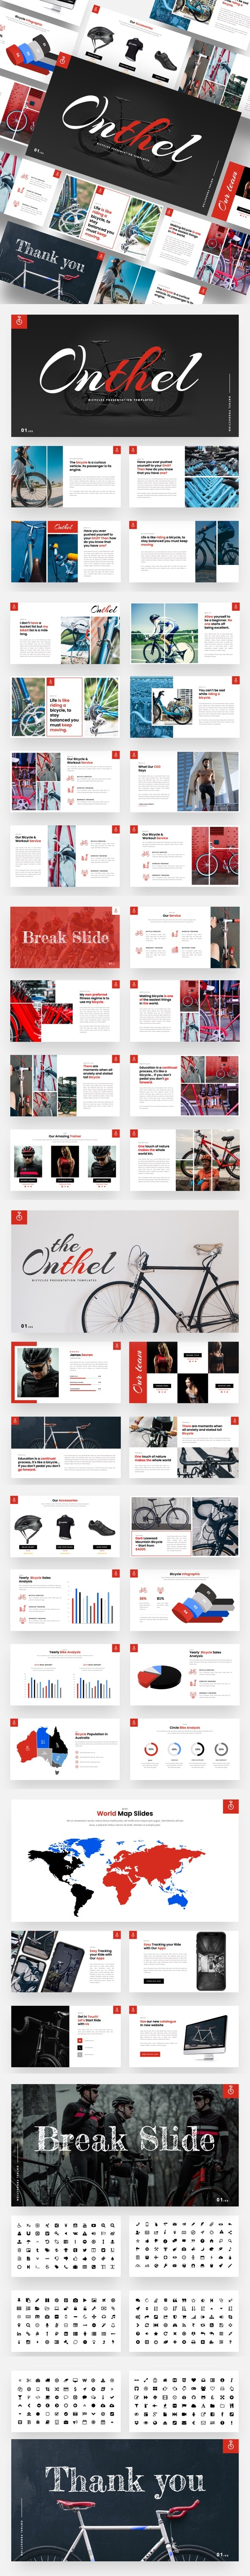 Onthel - Bicycle Powerpoint Template - Miscellaneous PowerPoint Templates